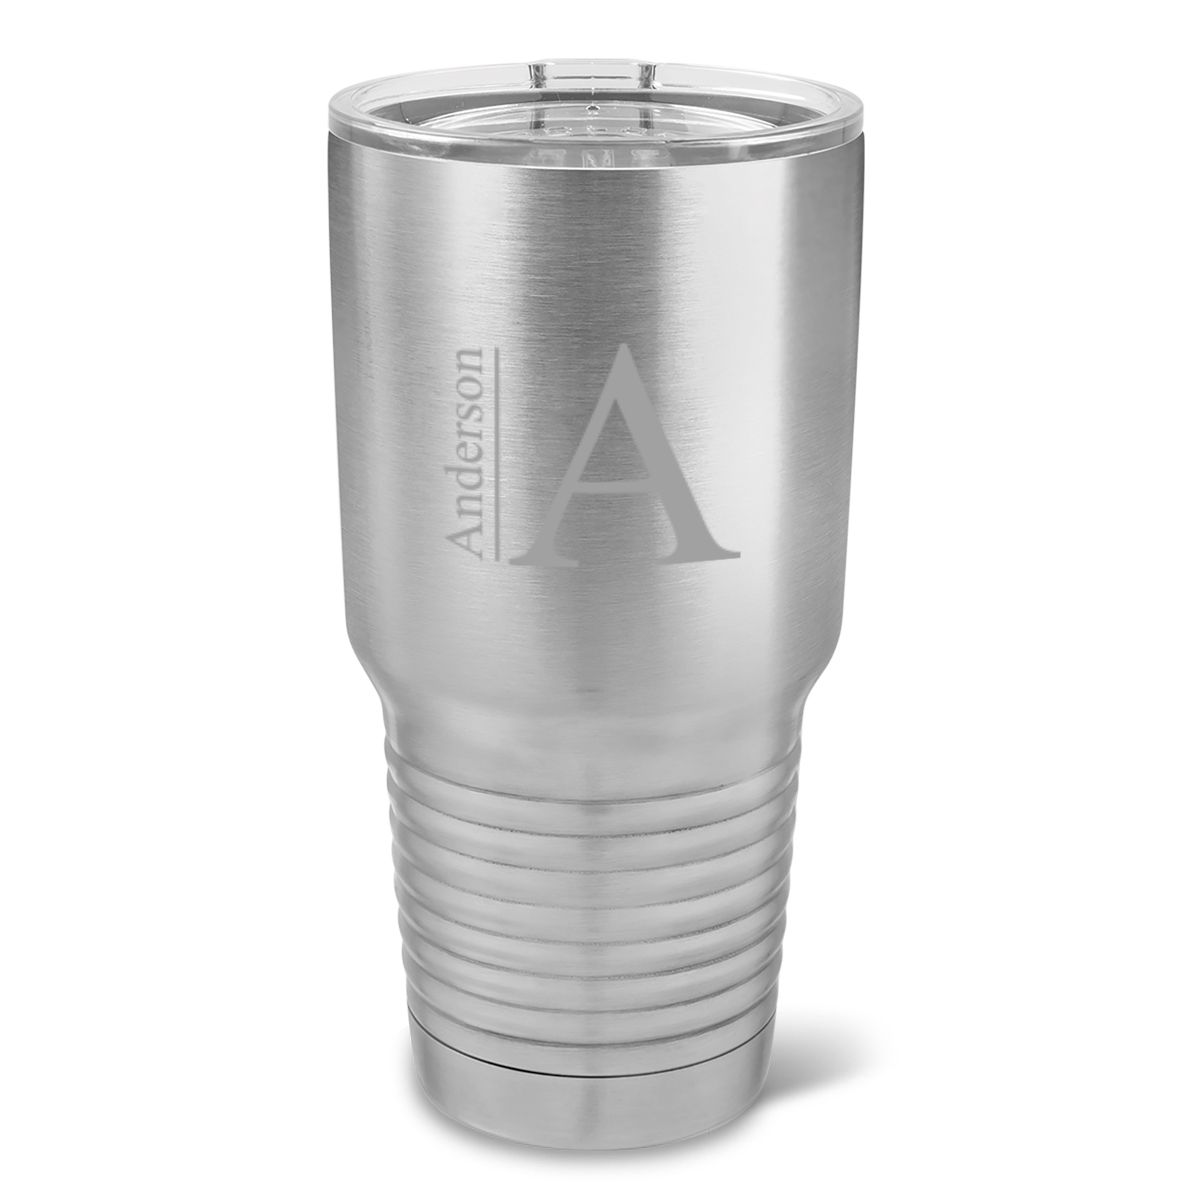 a19ce5caef4 Monogrammed 30 oz. Stainless Steel Double Wall Insulated Tumbler ...